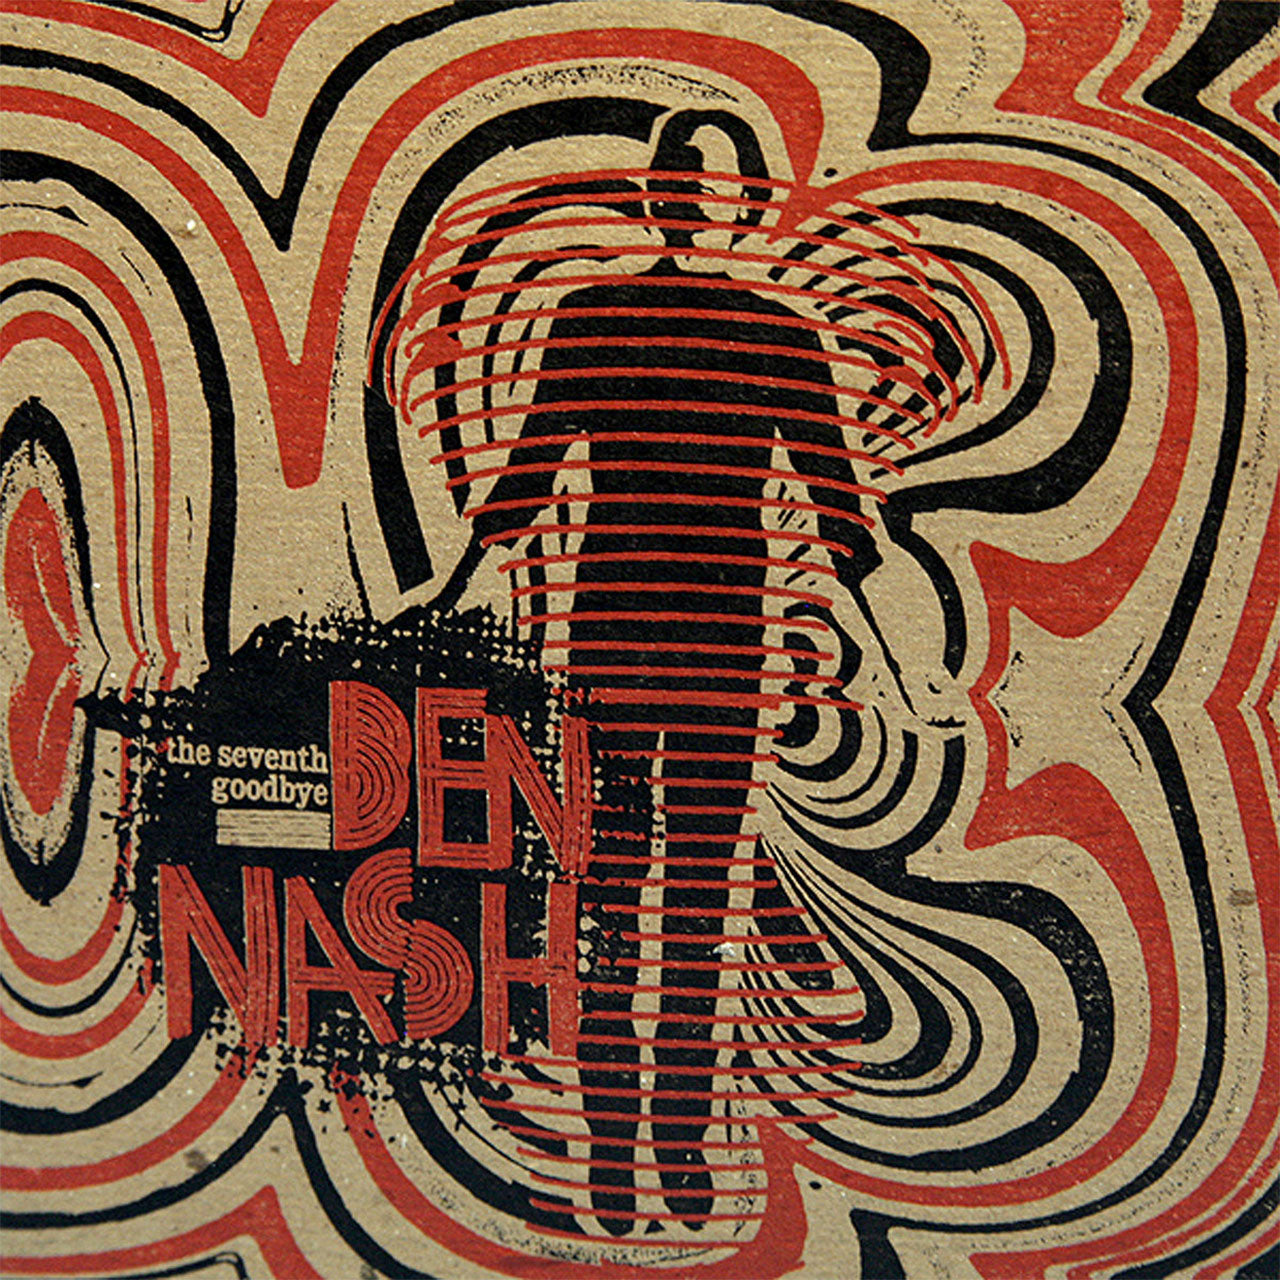 Ben Nash - The Seventh Goodbye (CD)